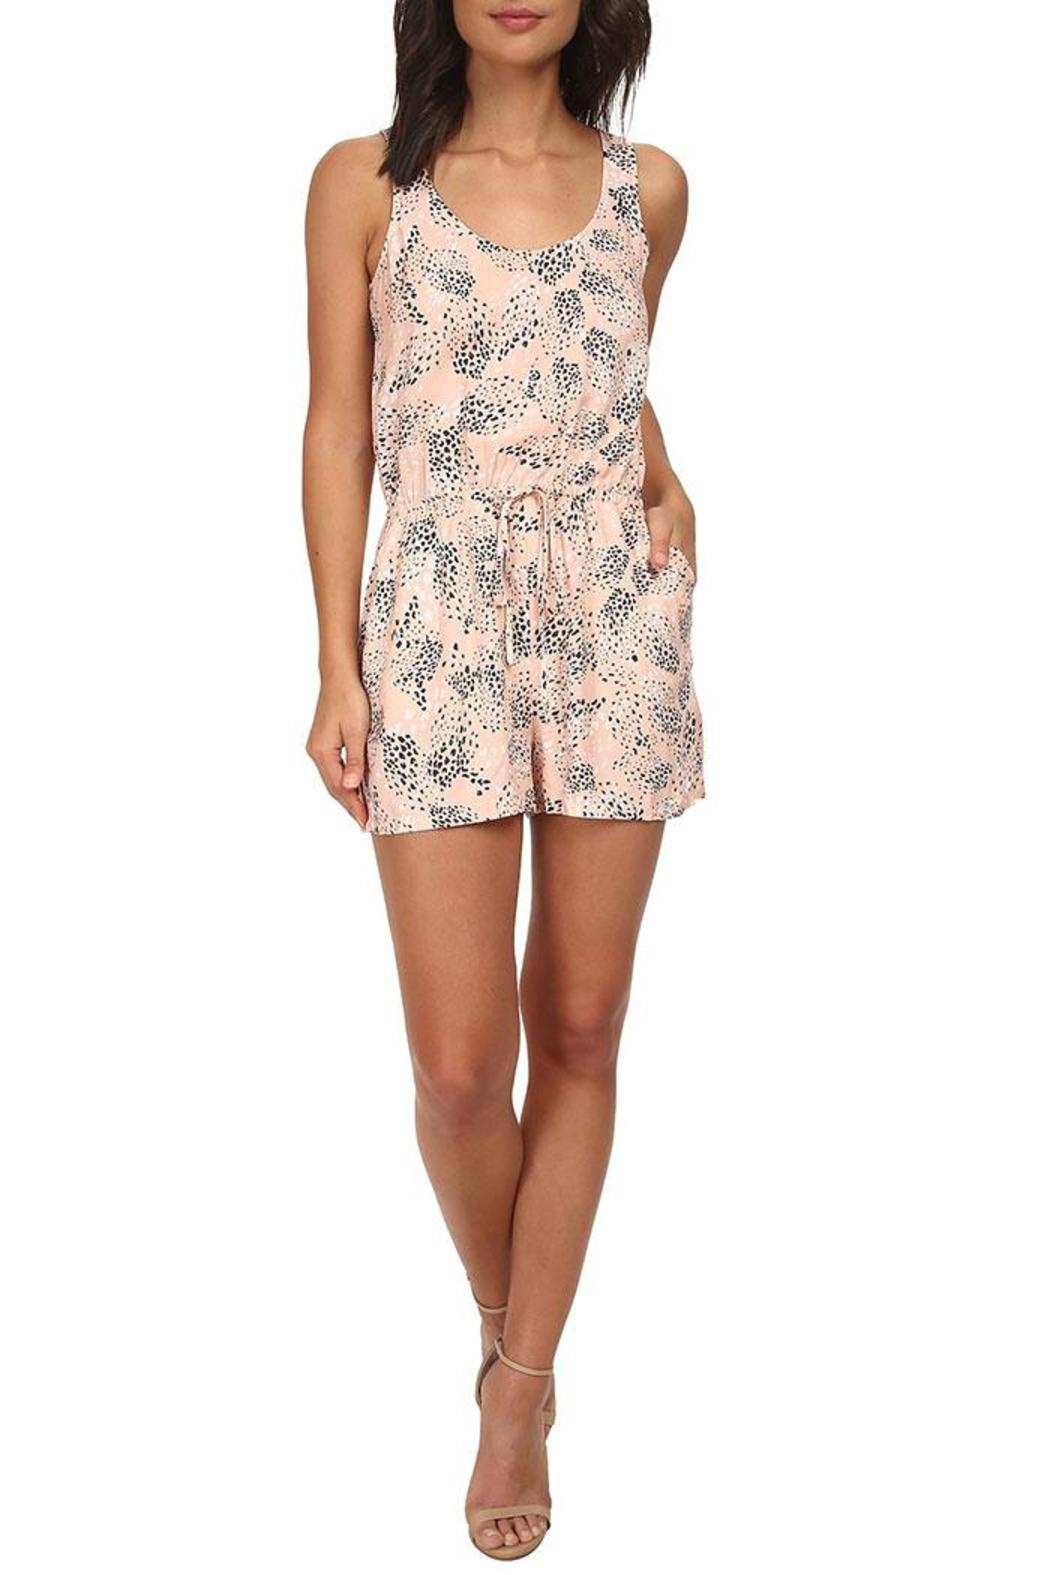 Jack by BB Dakota Dune Print Romper - Front Cropped Image